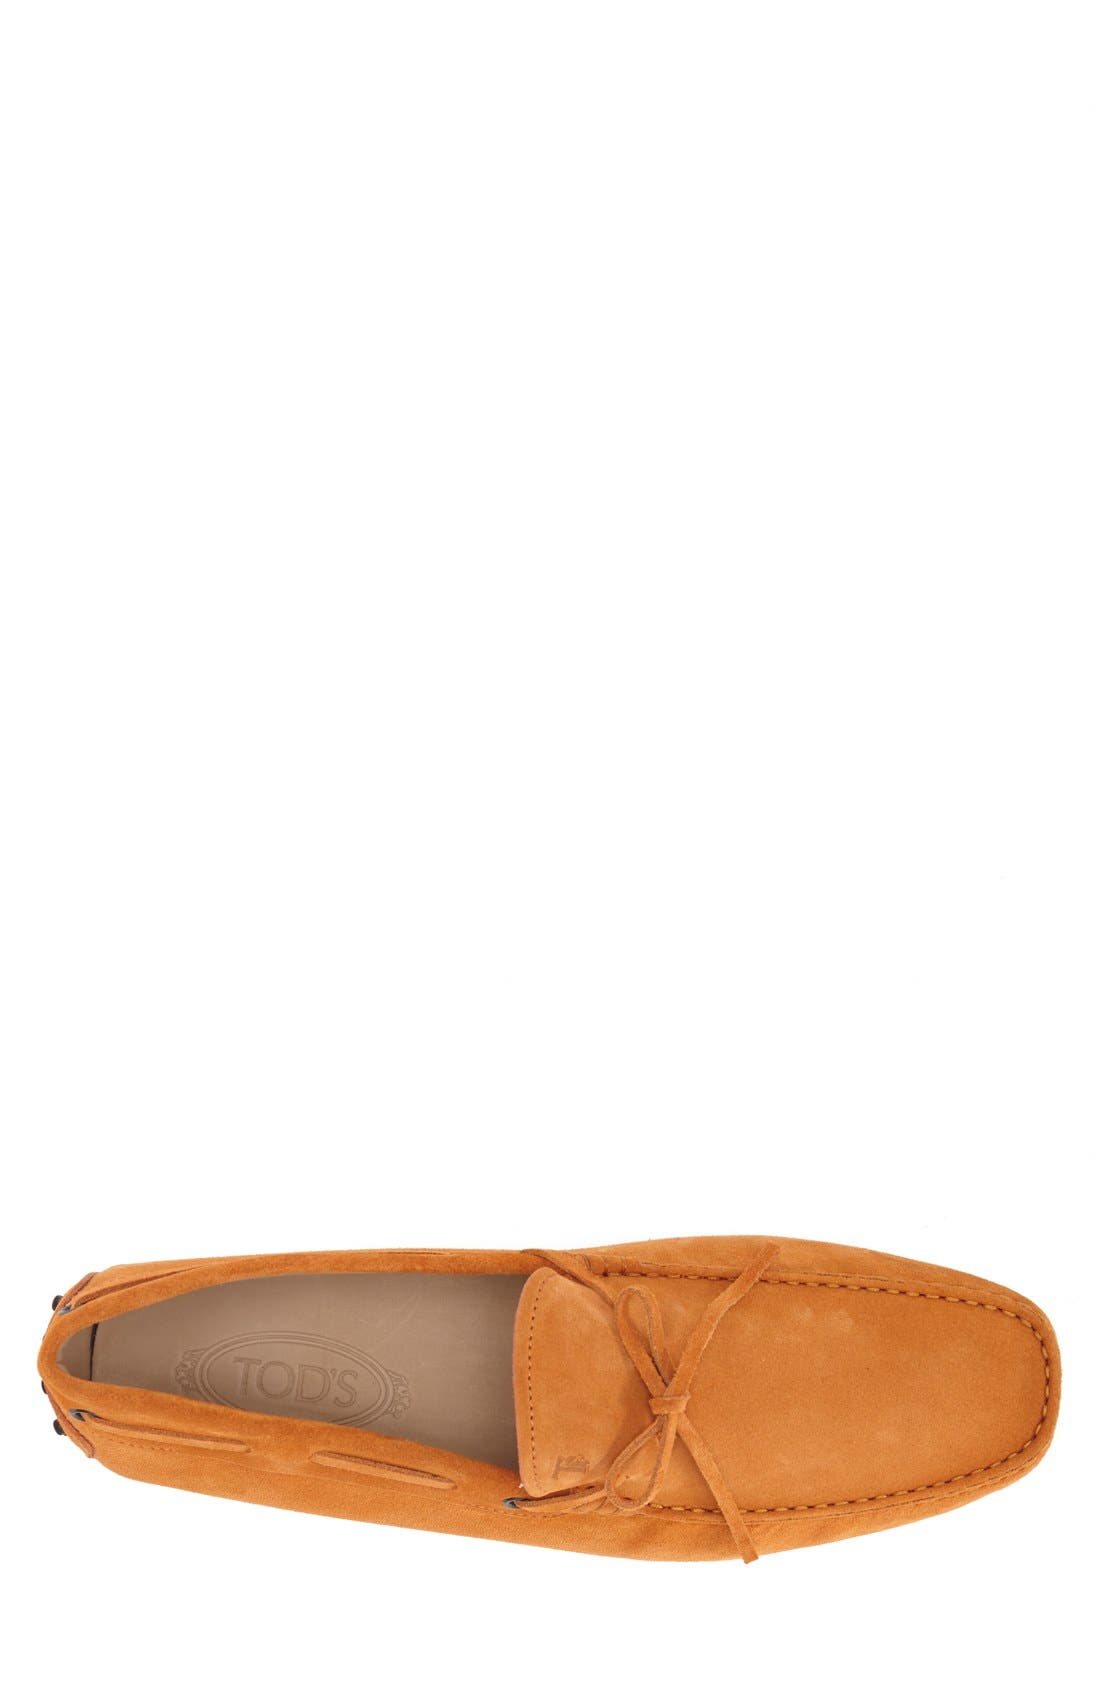 Gommini Tie Front Driving Moccasin,                             Alternate thumbnail 69, color,